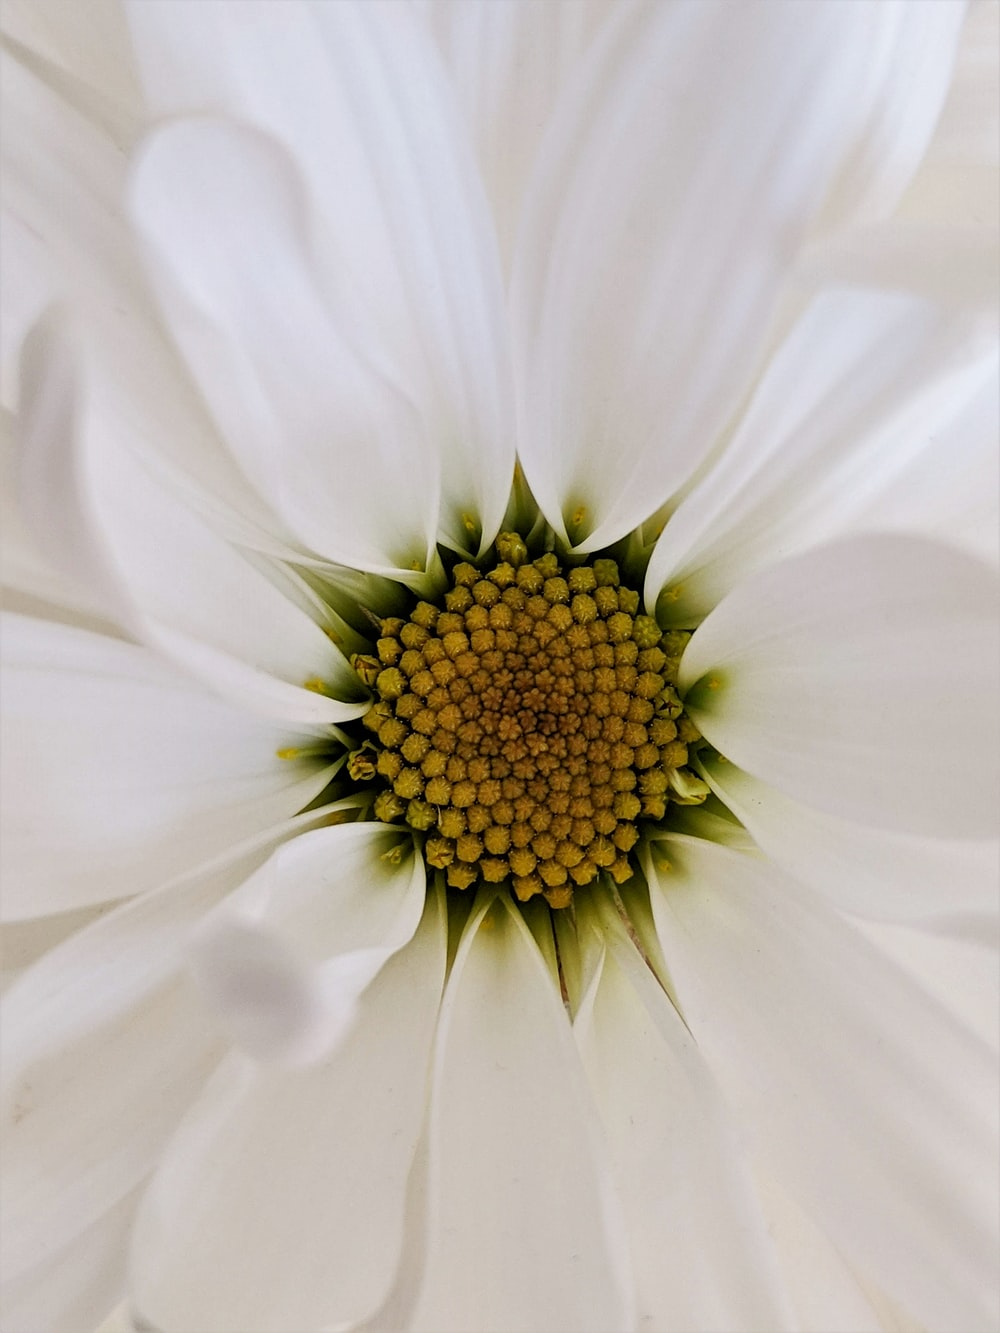 white daisy in bloom close up photo